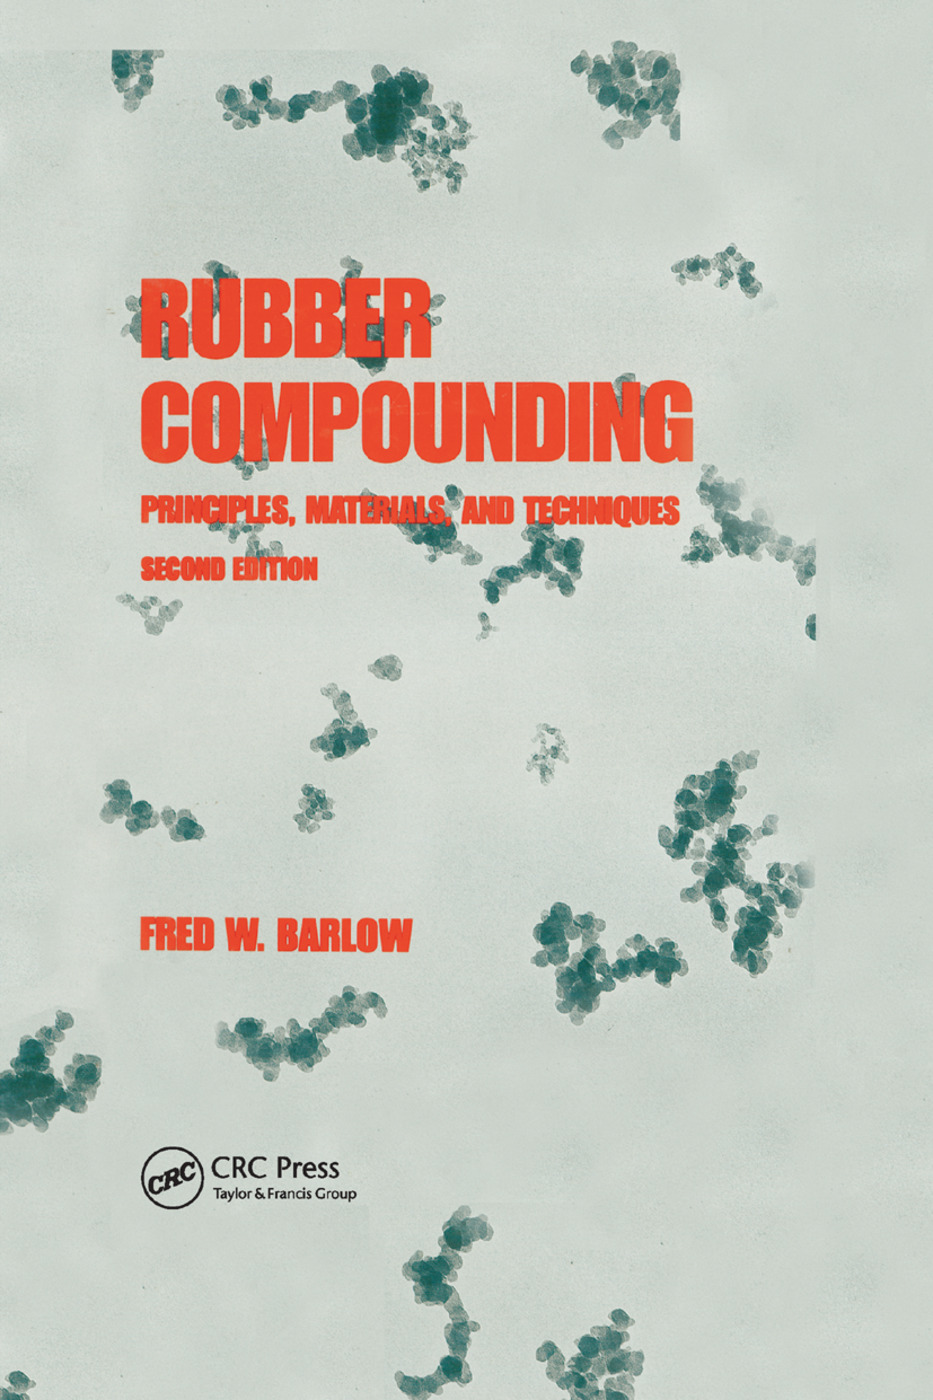 Rubber Compounding: Principles: Materials, and Techniques, Second Edition book cover